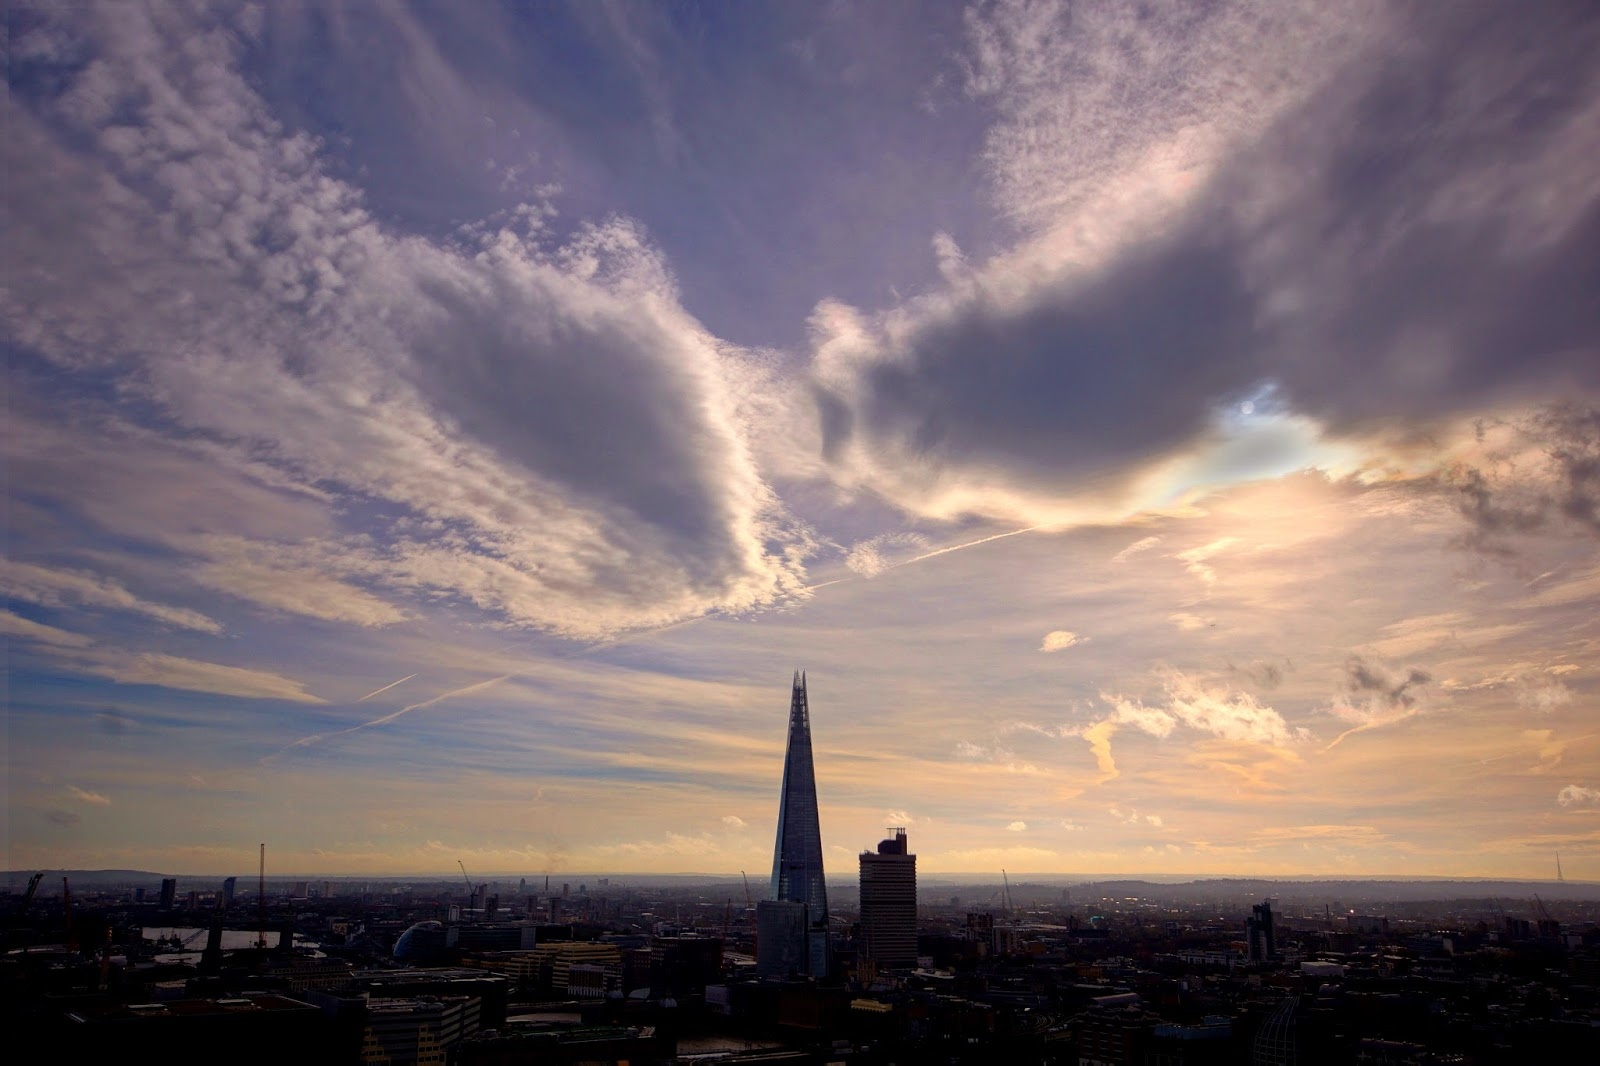 London, st pauls, silhouette, clouds, sky, the shard, cityscape, landscape, photo